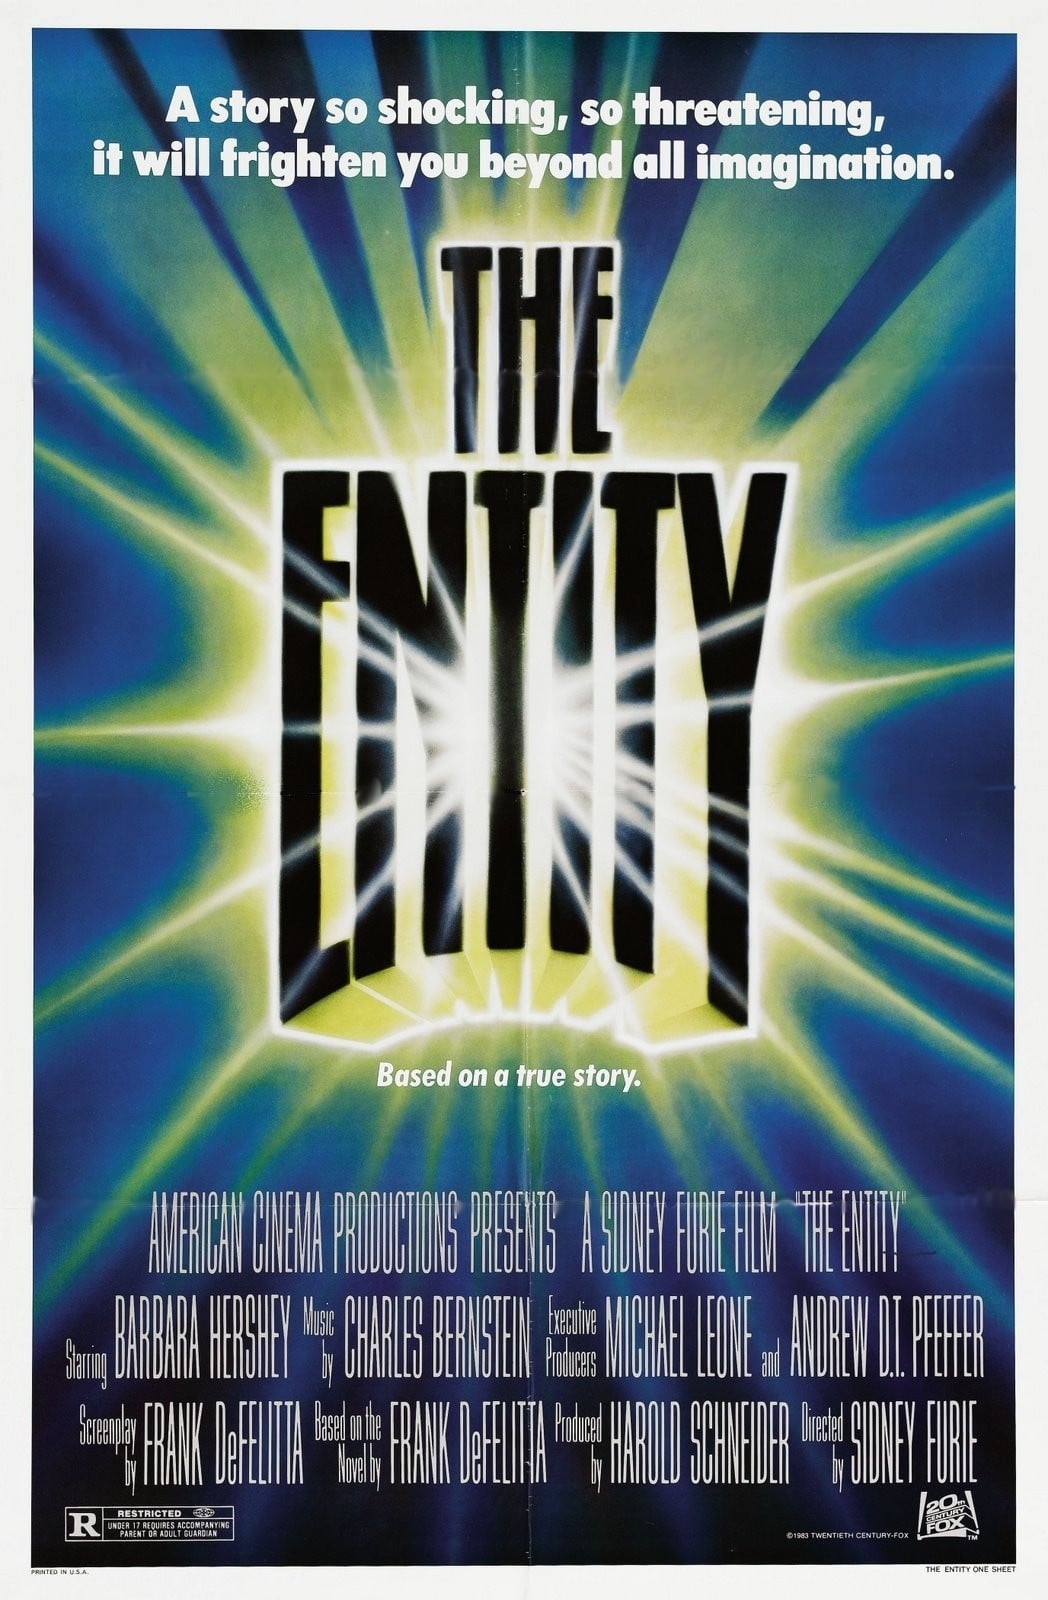 TheEntity